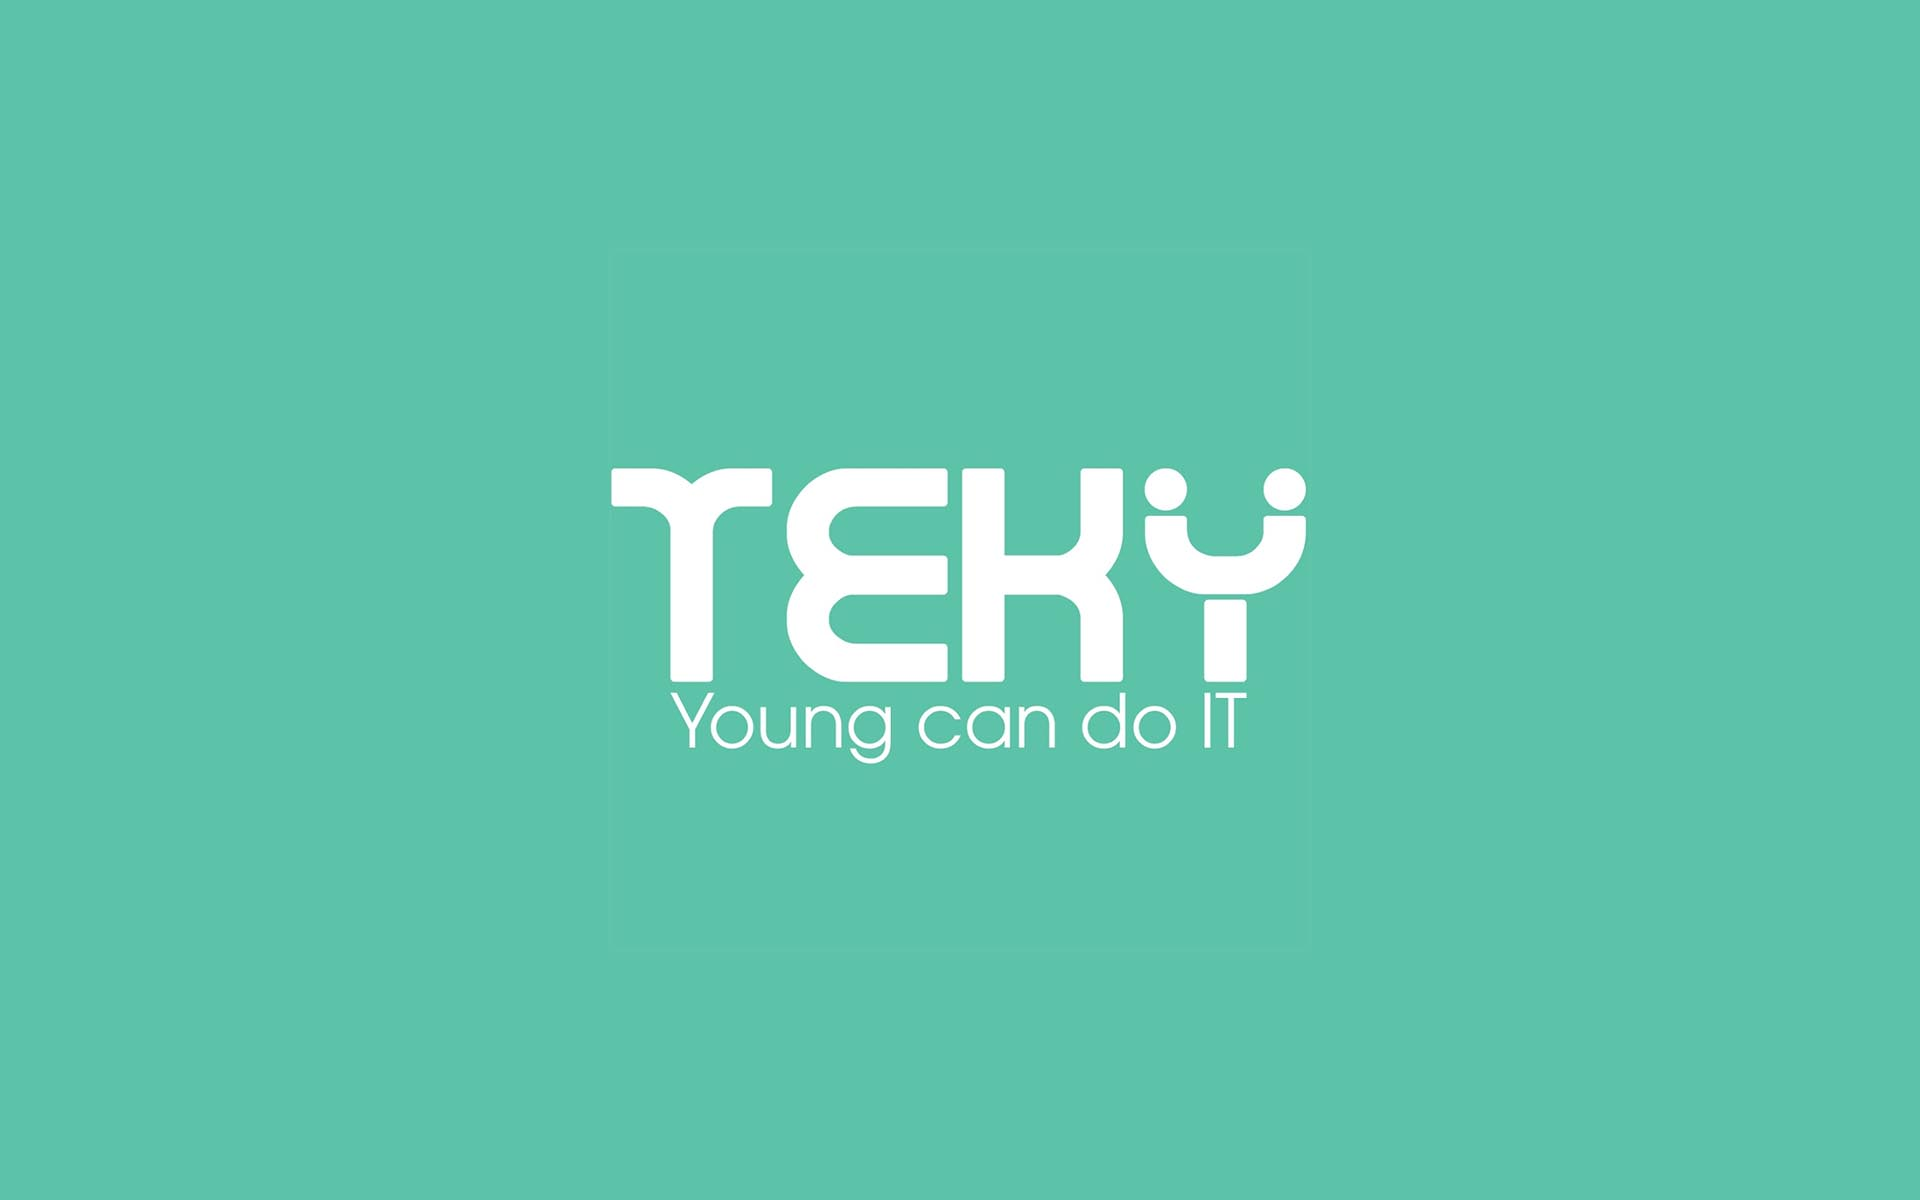 NextTech Group Announce Launch Of TEKY ICO & World's First Ecommerce Cryptocurrency Token Based On Ecosystem Of Ecommerce & Education